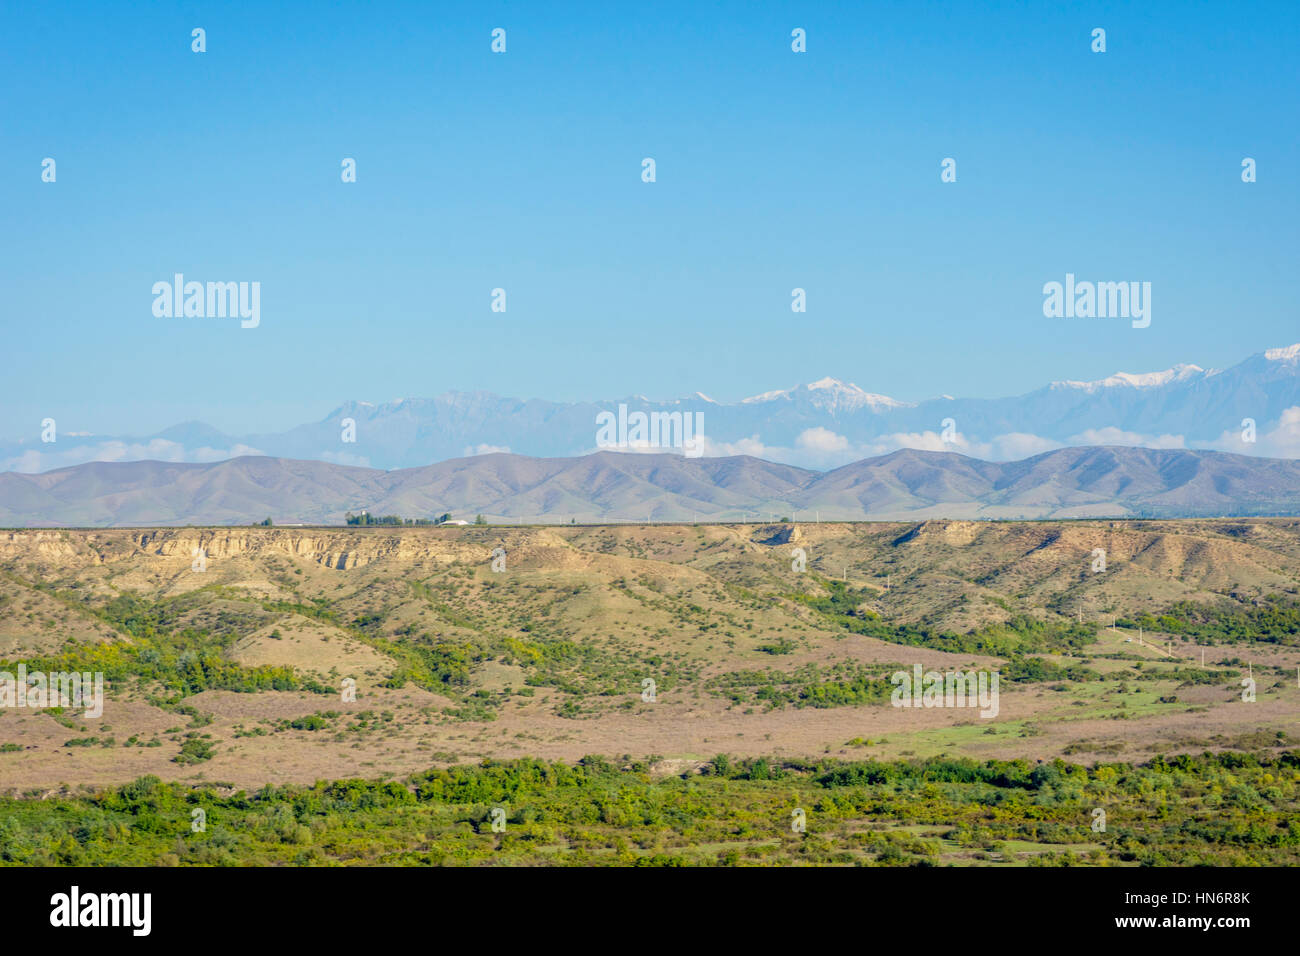 River, green meadow, golden fields and mountains with snow peaks, amazing landscapes of Azerbaijan - Stock Image